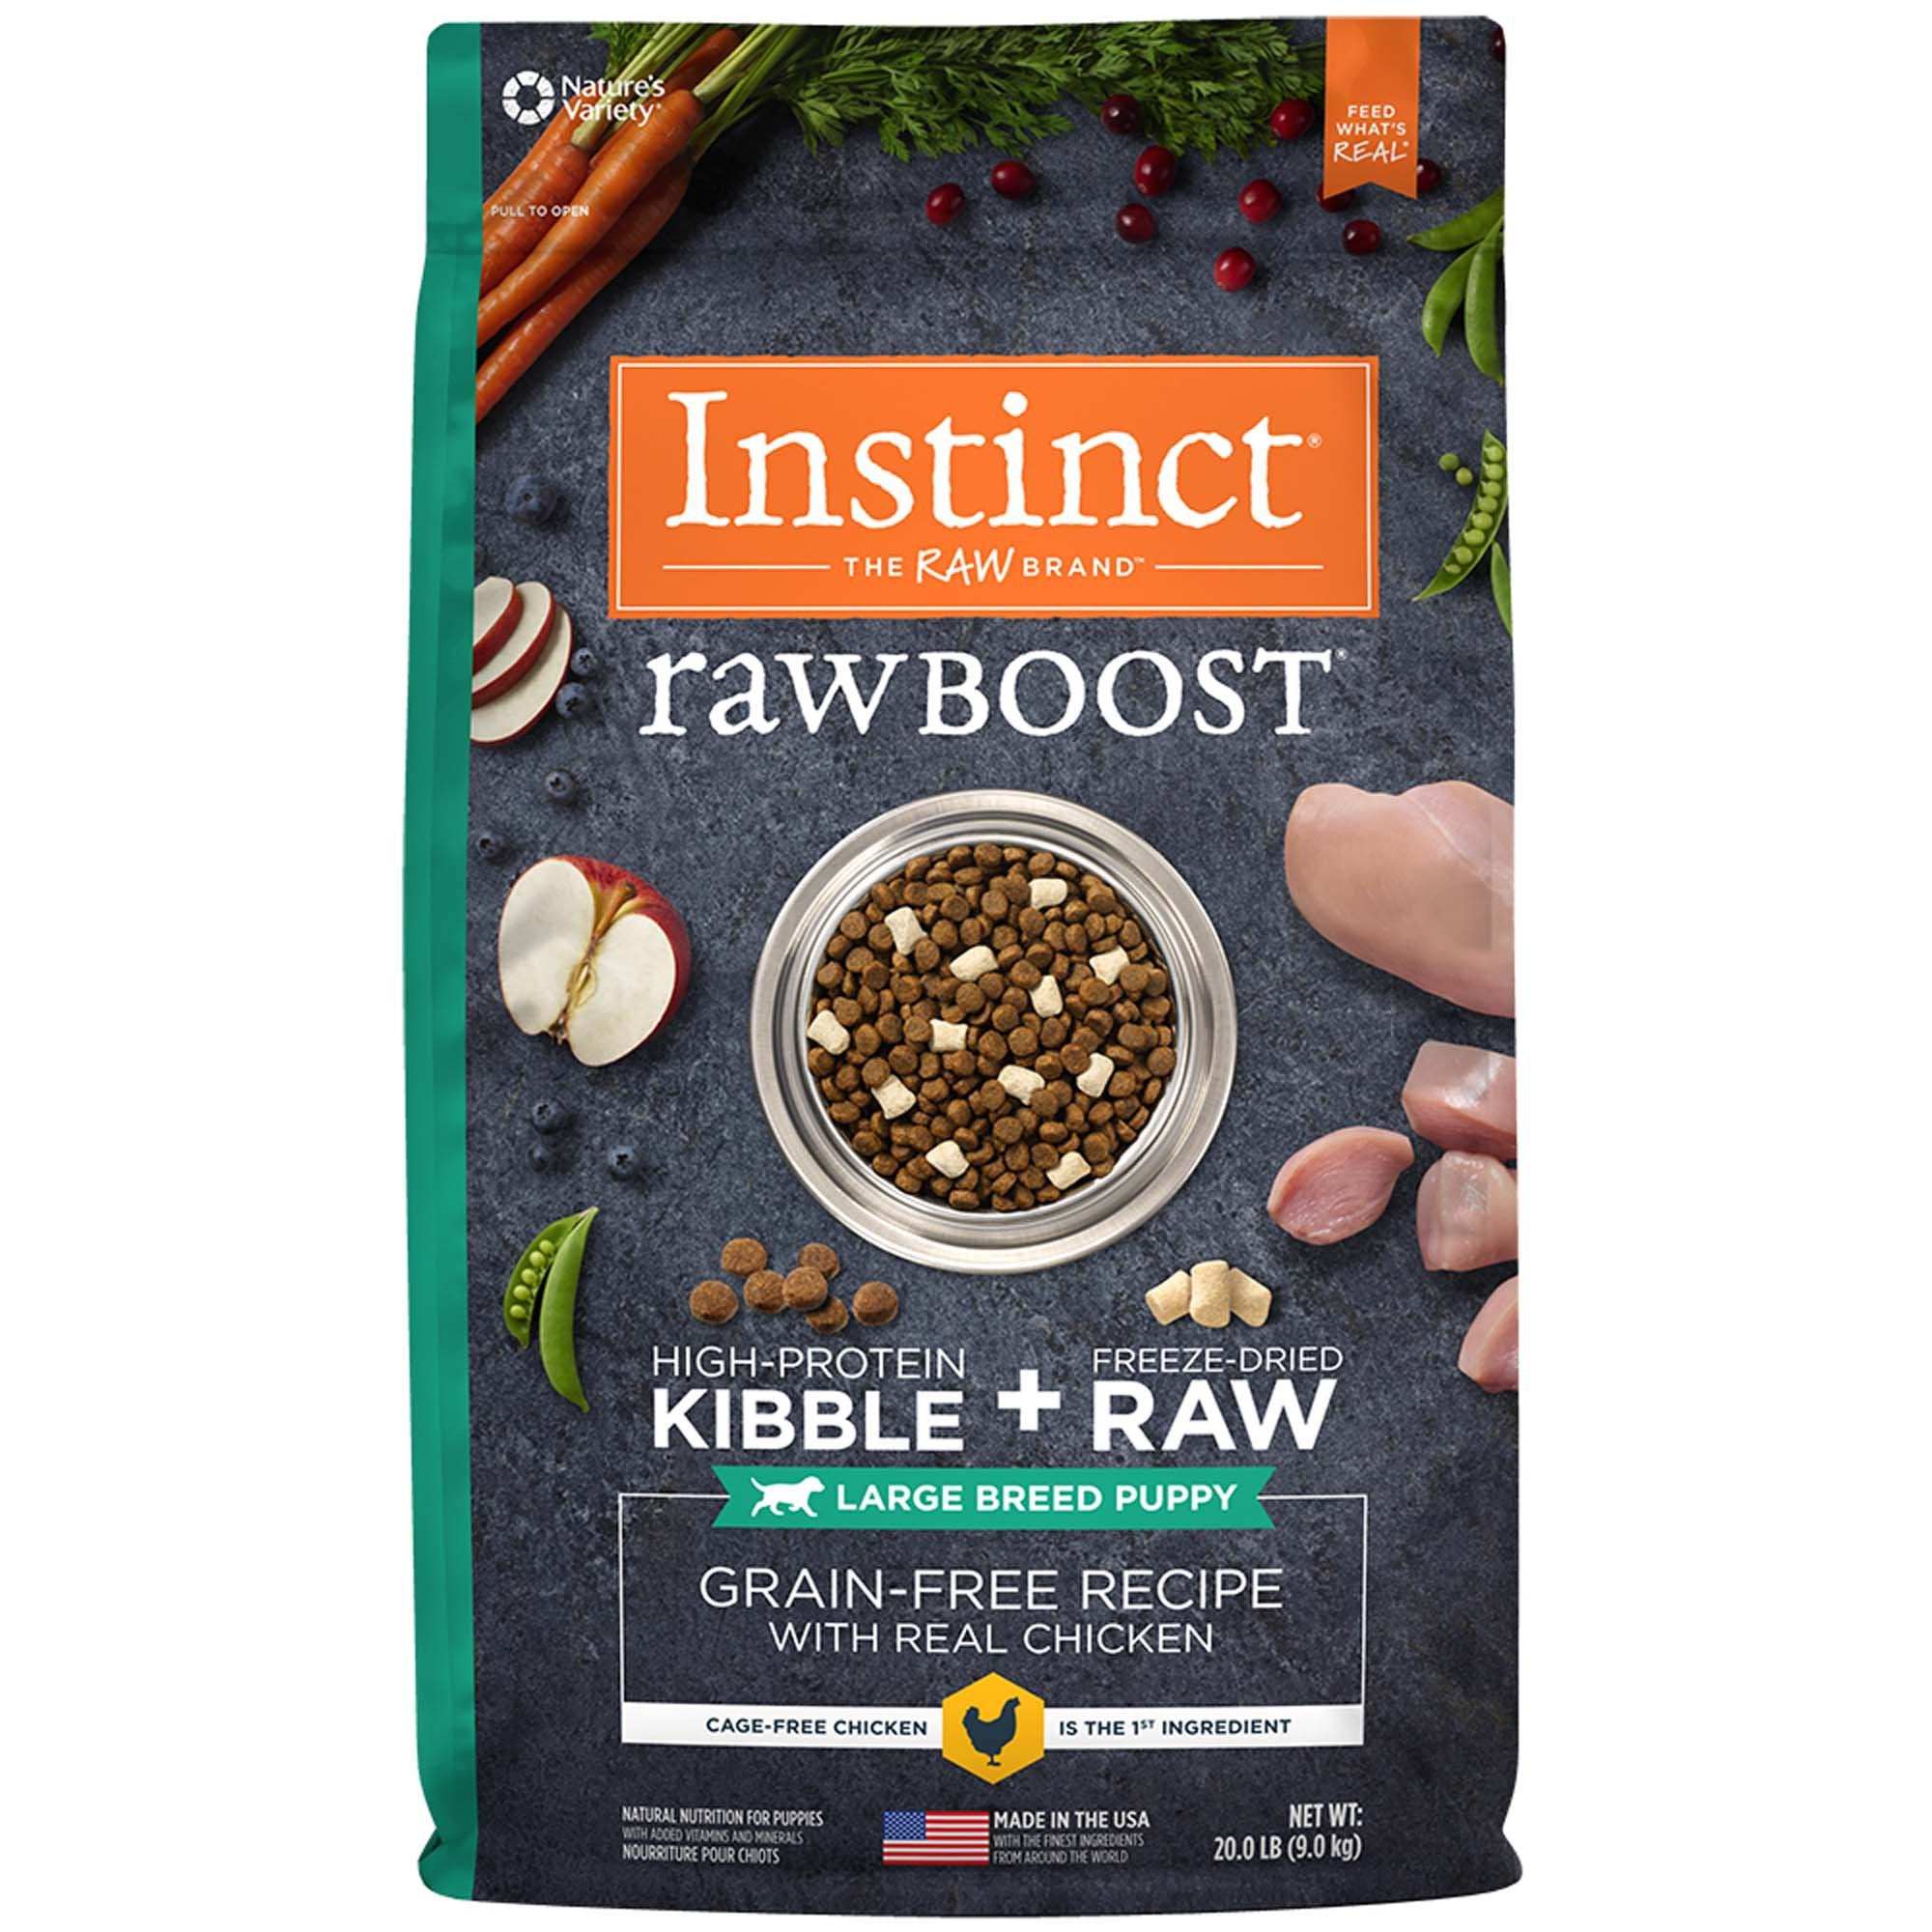 Nature's Variety Instinct Raw Boost Large Breed Puppy Chicken Dry Dog Food